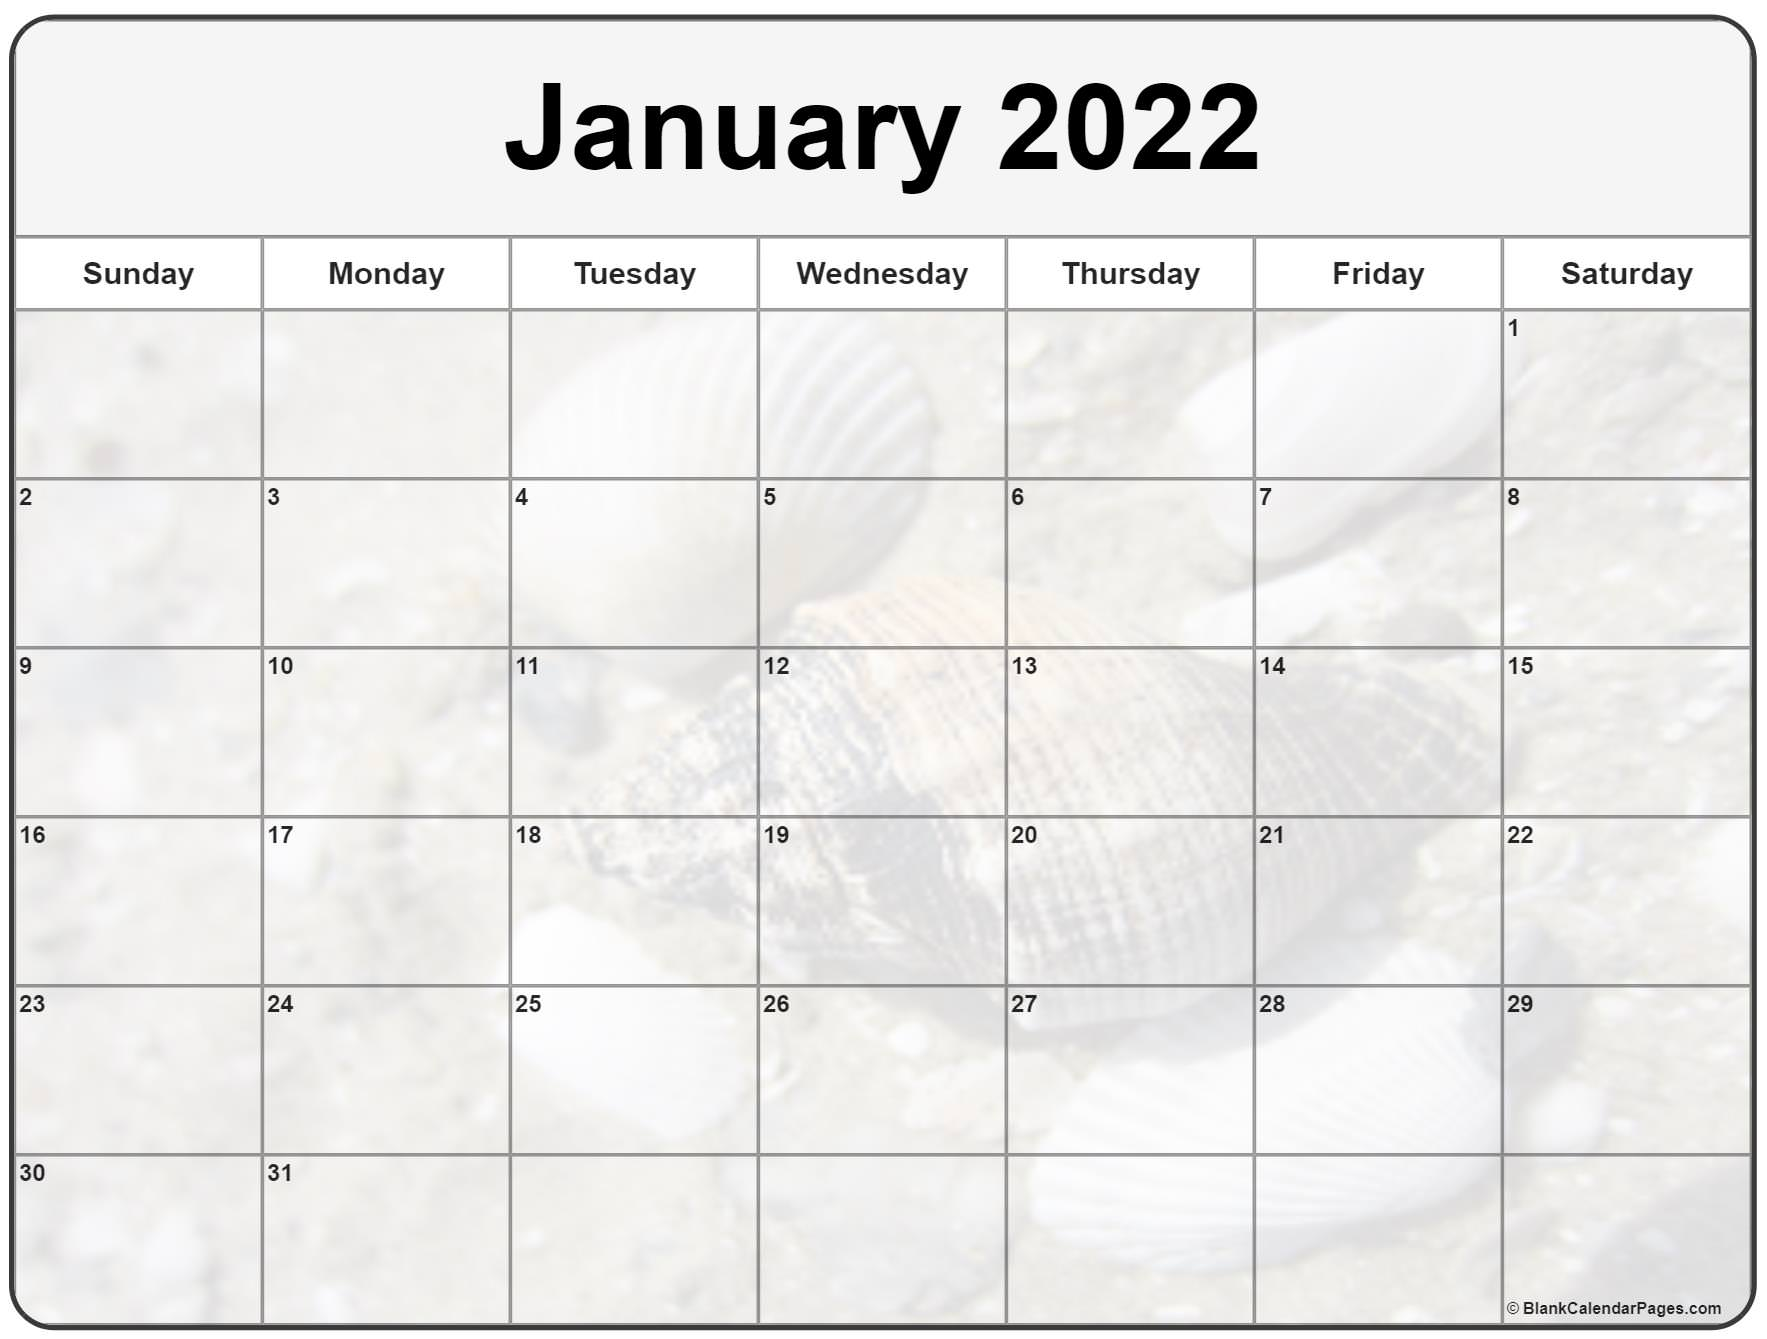 Remembering bill due dates is easy with a system for noting what needs to be paid and whether you've done with these free printable bill calendars. Collection of January 2022 photo calendars with image filters.